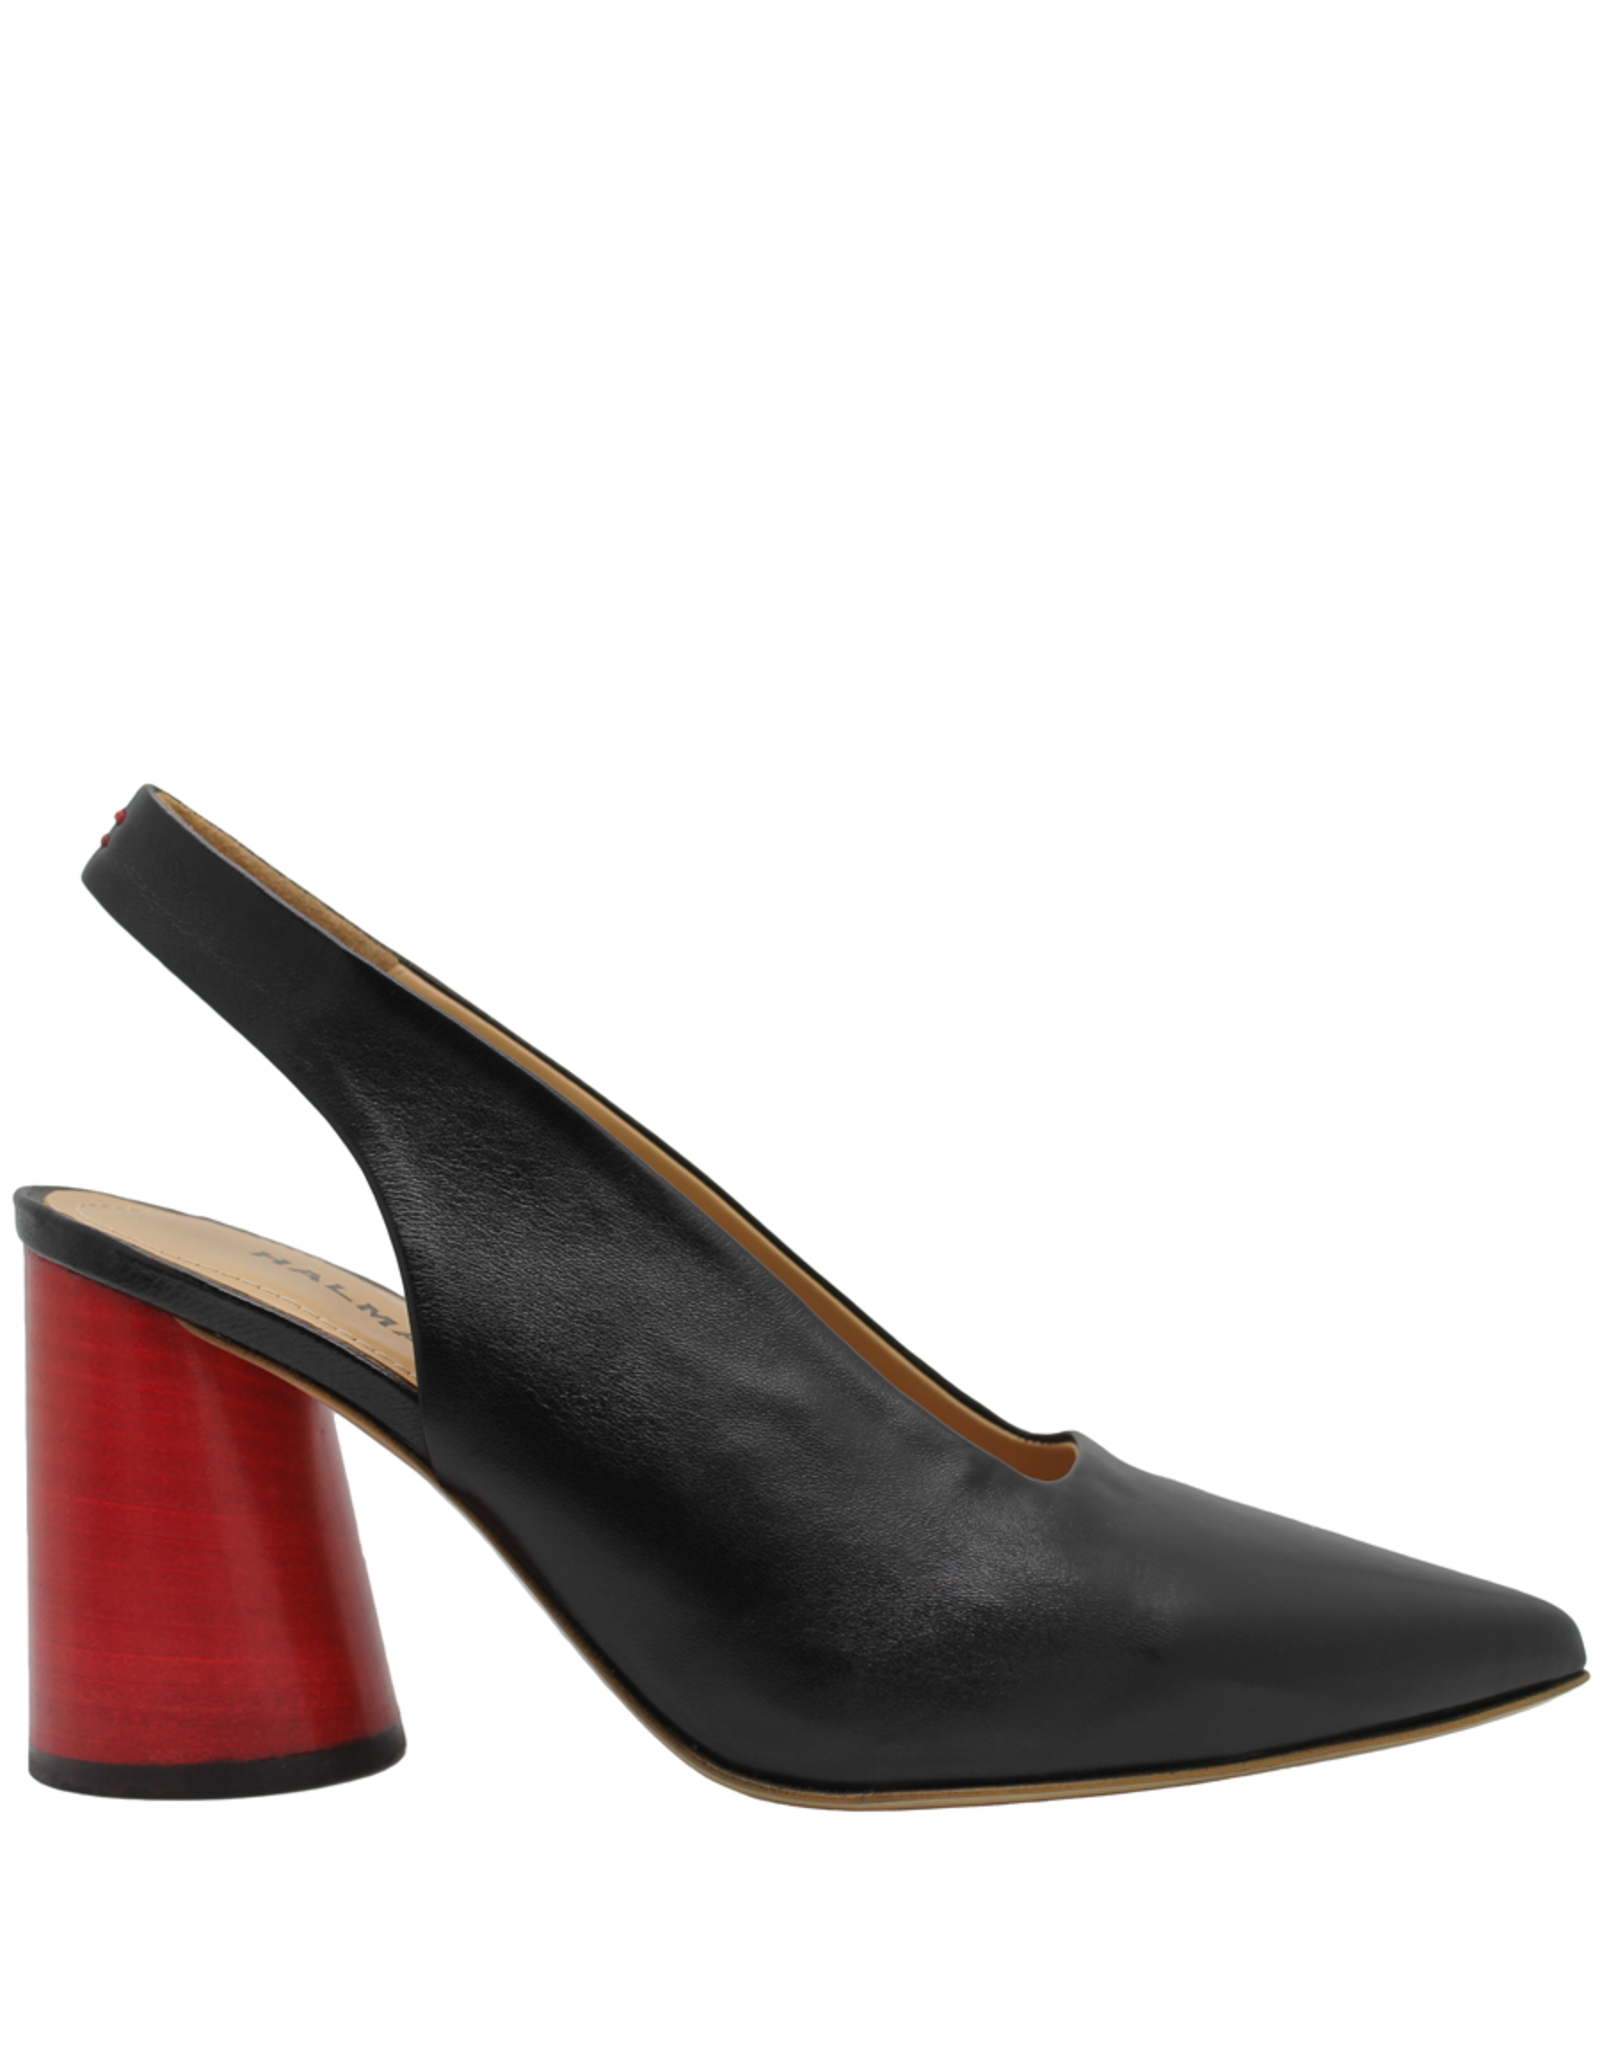 Halmanera Halmanera Black Point Toe Sling Back With Red Heel 2010